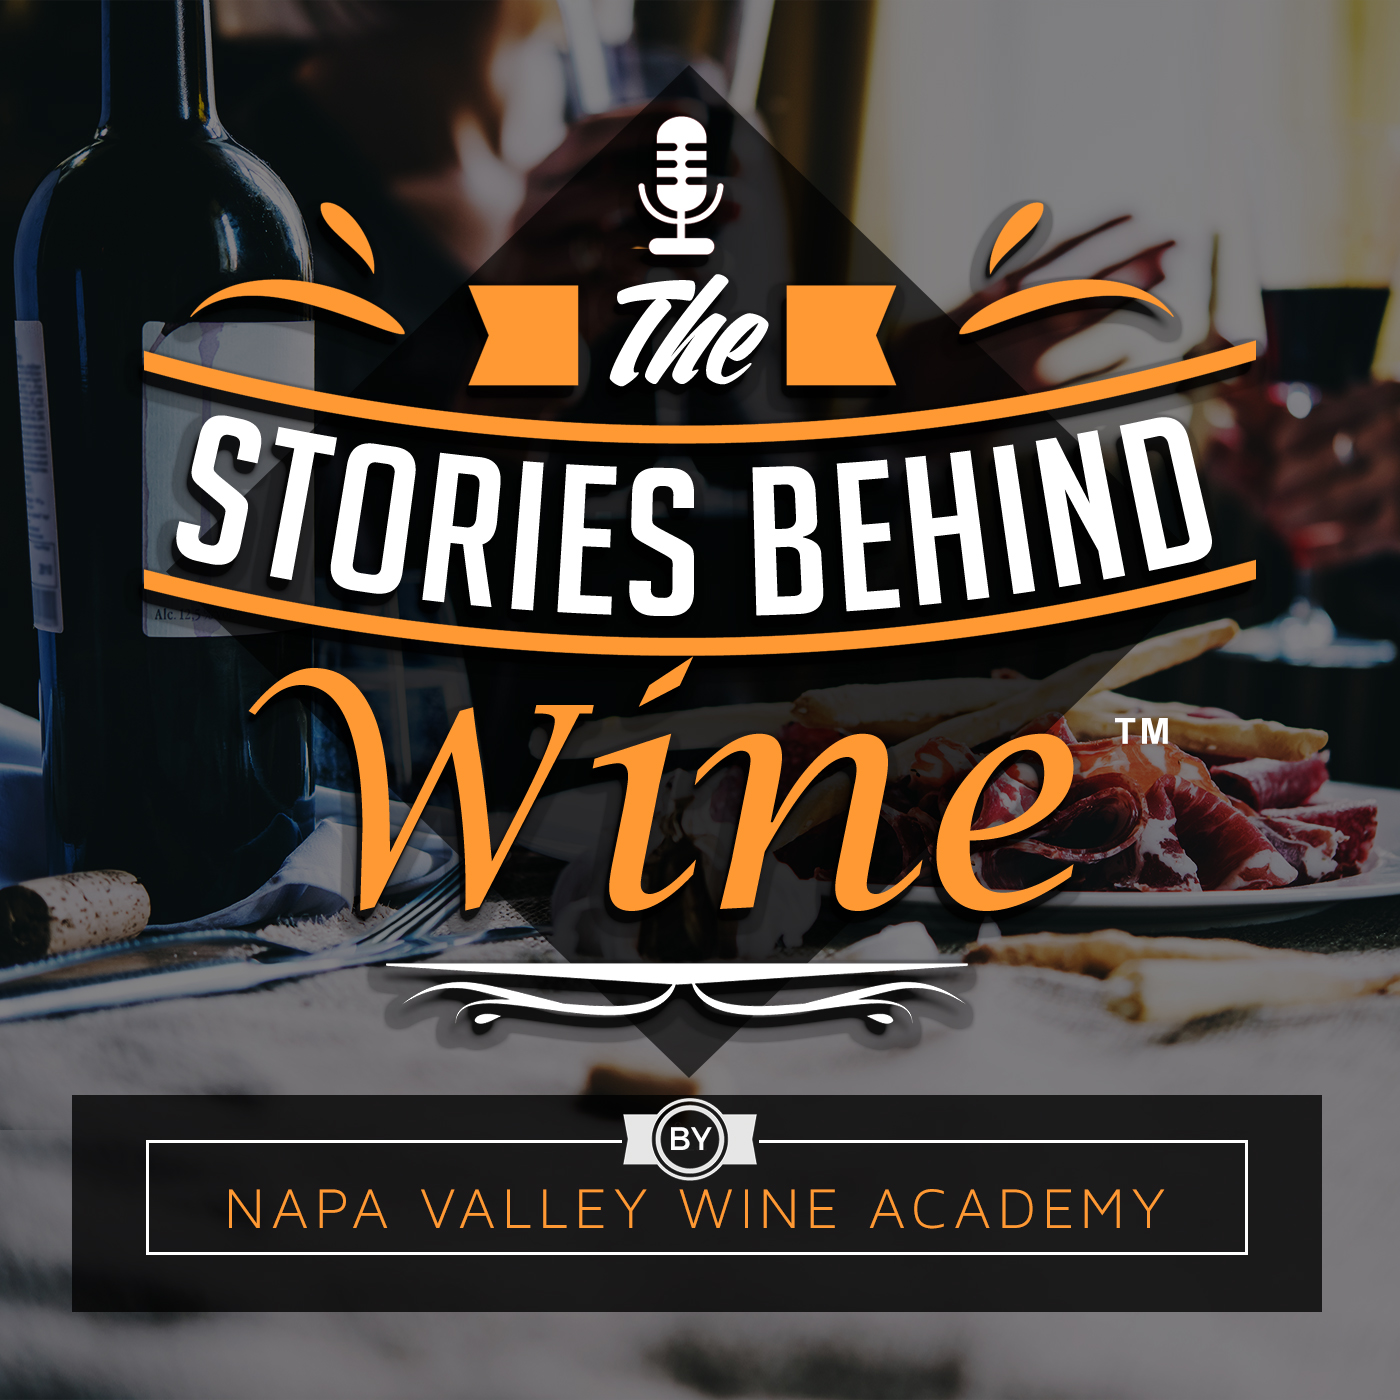 The Stories Behind Wine